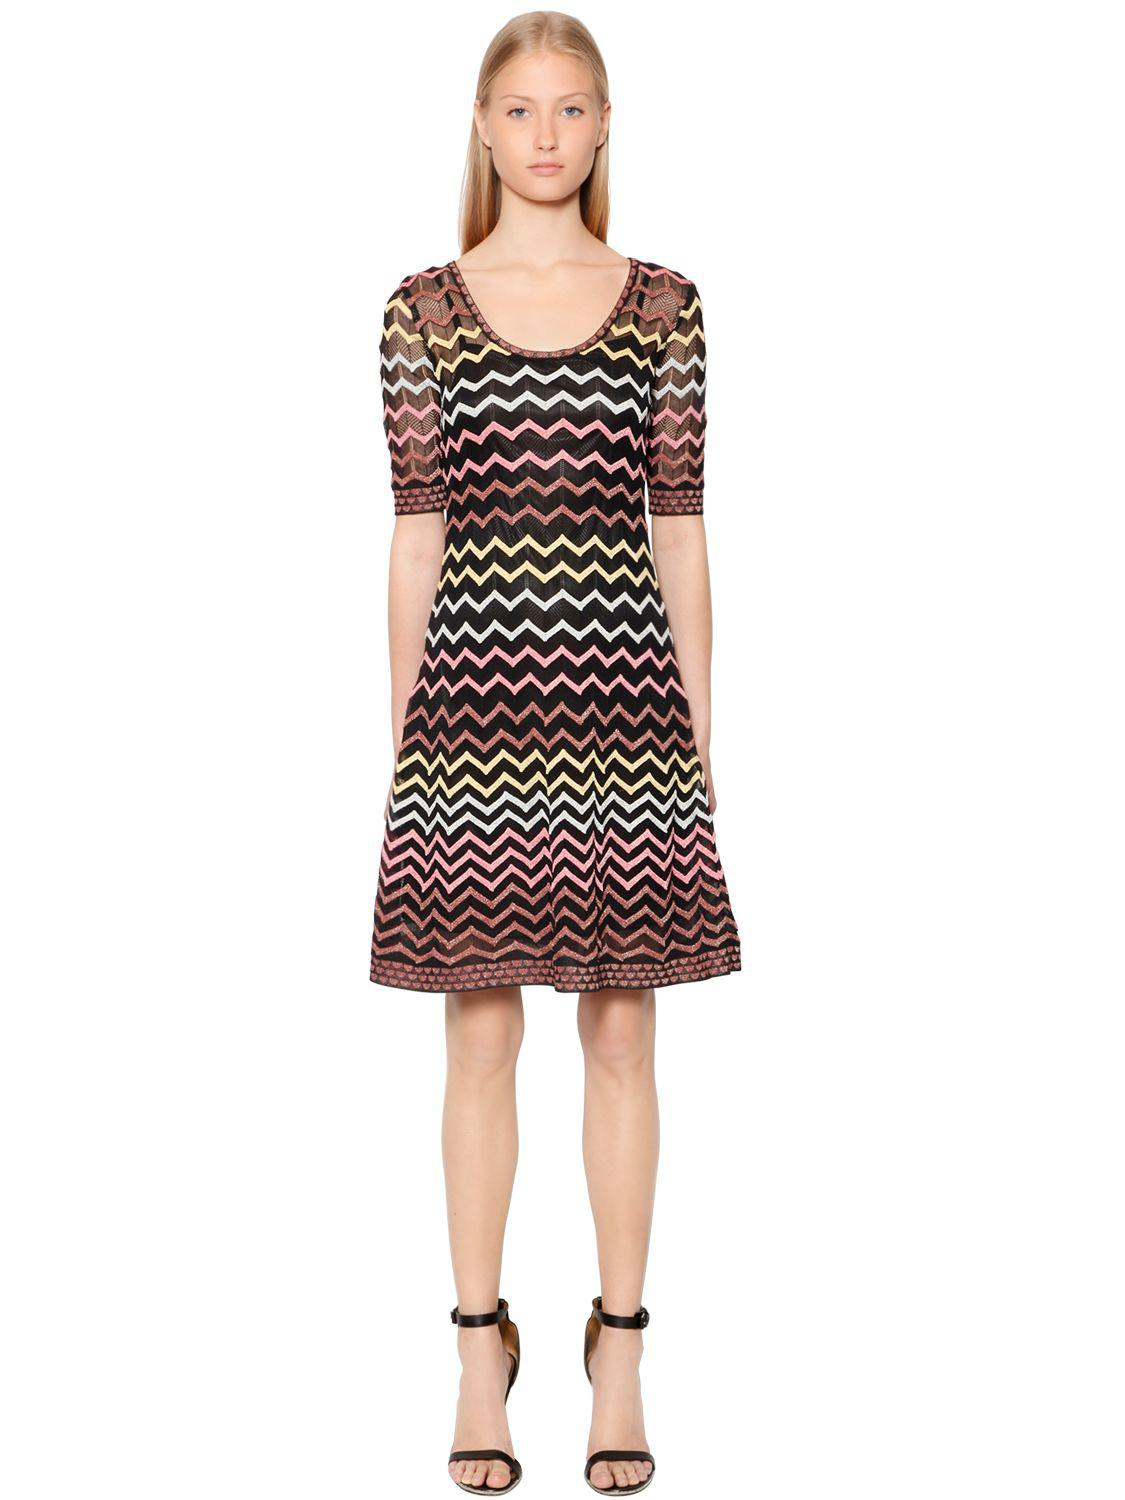 5d9d30a6a1f3 Lyst - M Missoni Zigzag Lurex Knit Dress in Black